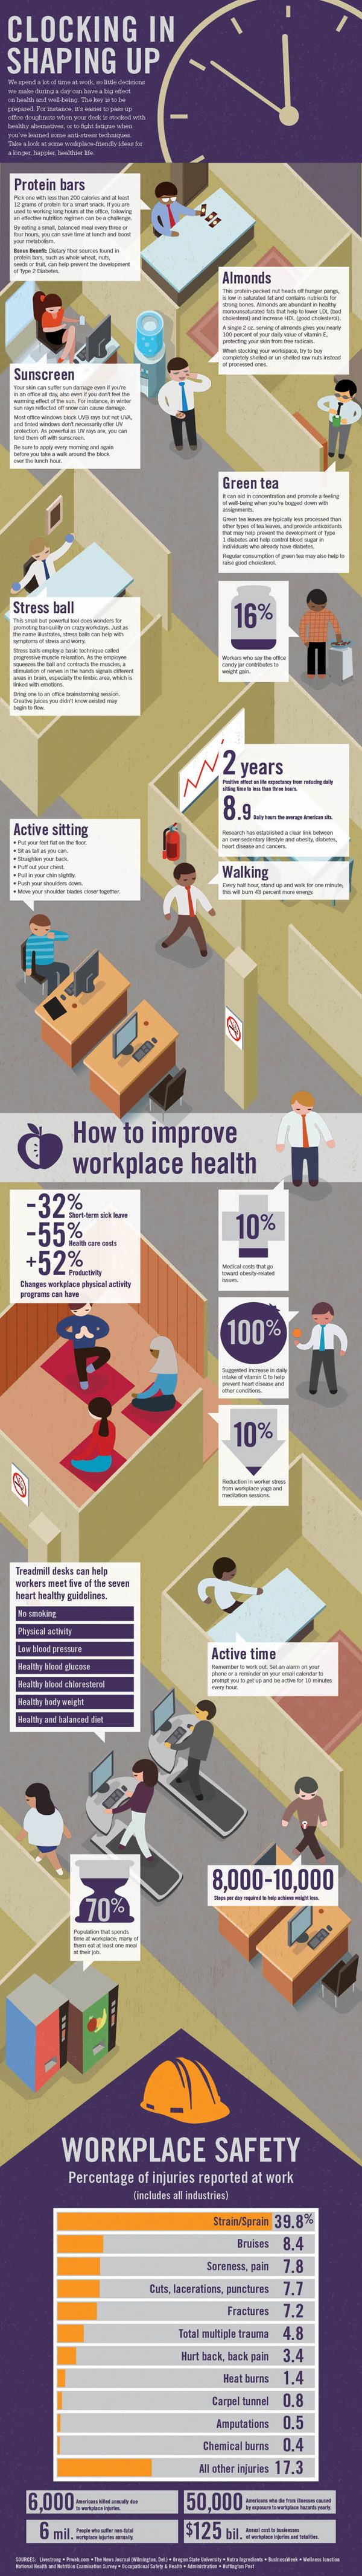 Our infographic walks through some of the key health and wellness opportunities and pitfalls of the office. Take a look at some of the workplace-friendly ideas for a longer, happier, and healthier life.